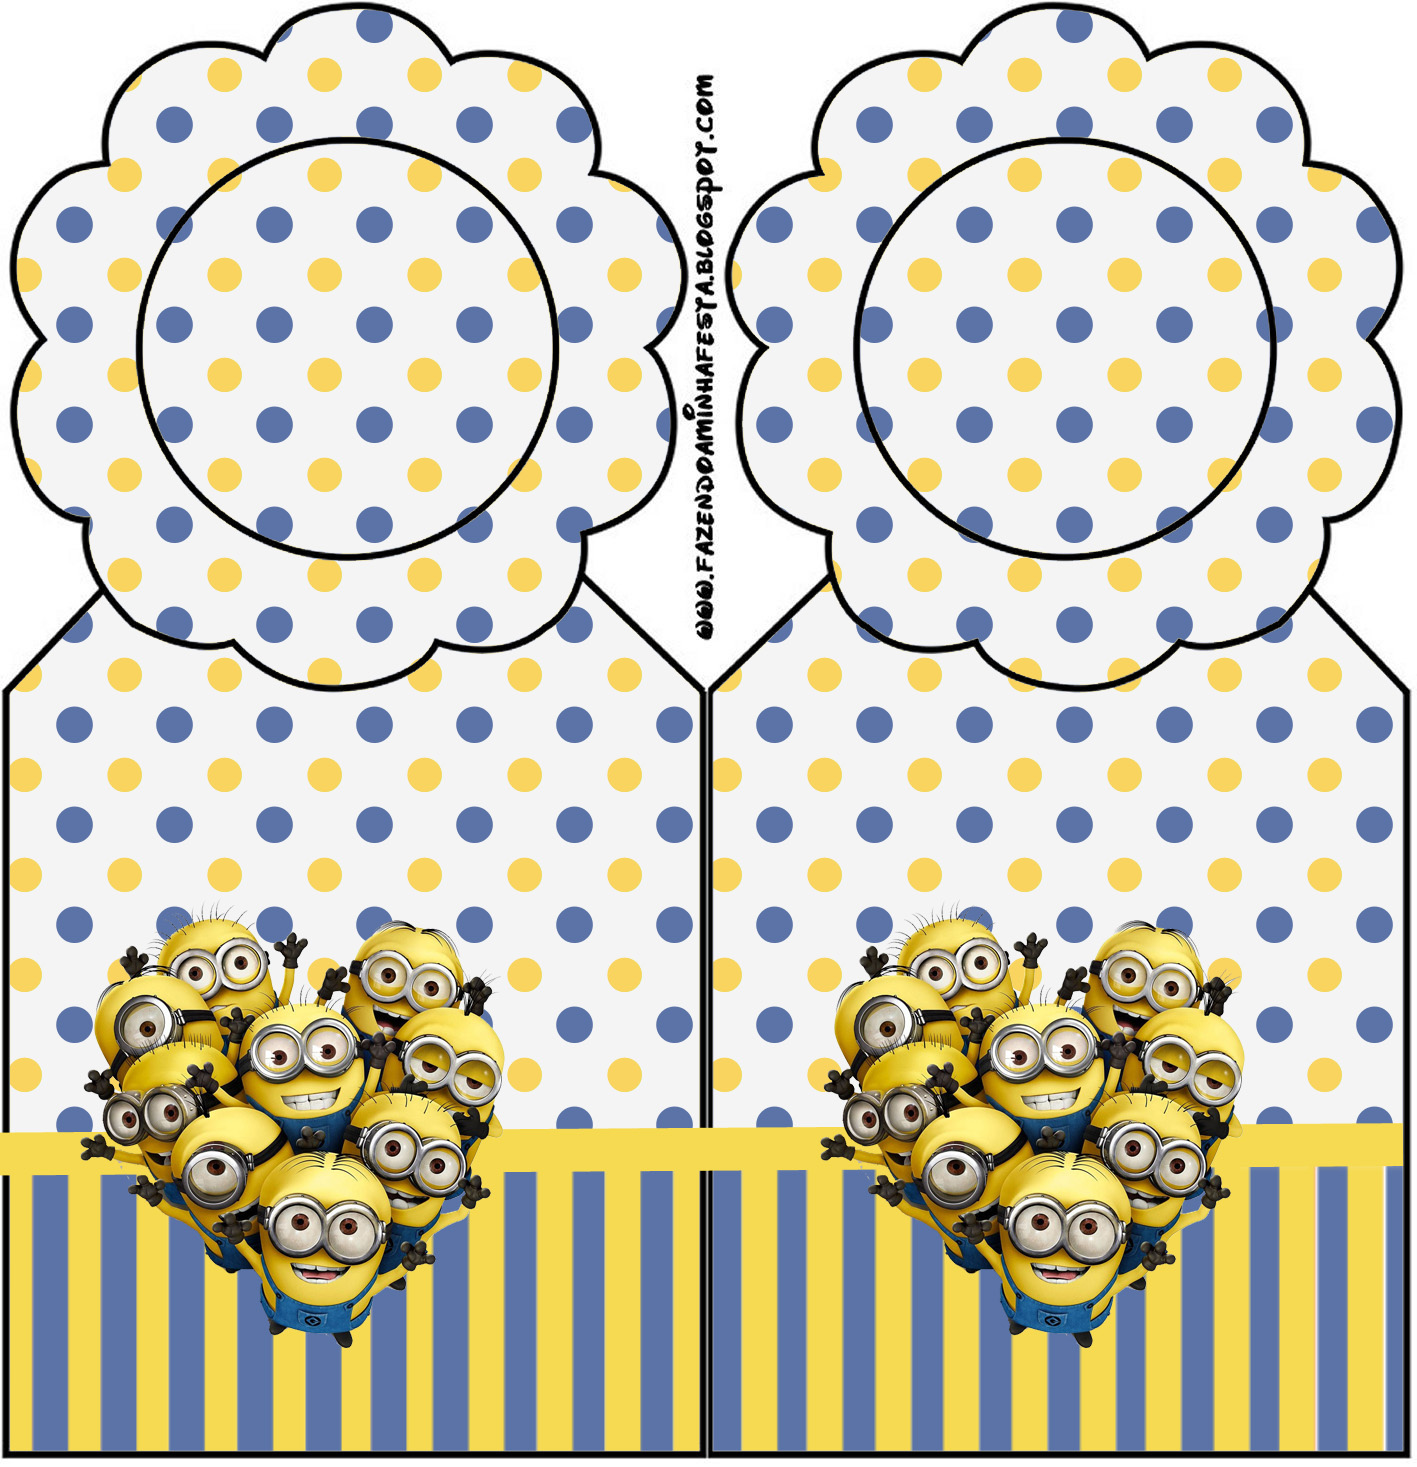 Minions free printable party stationery is it for parties is it